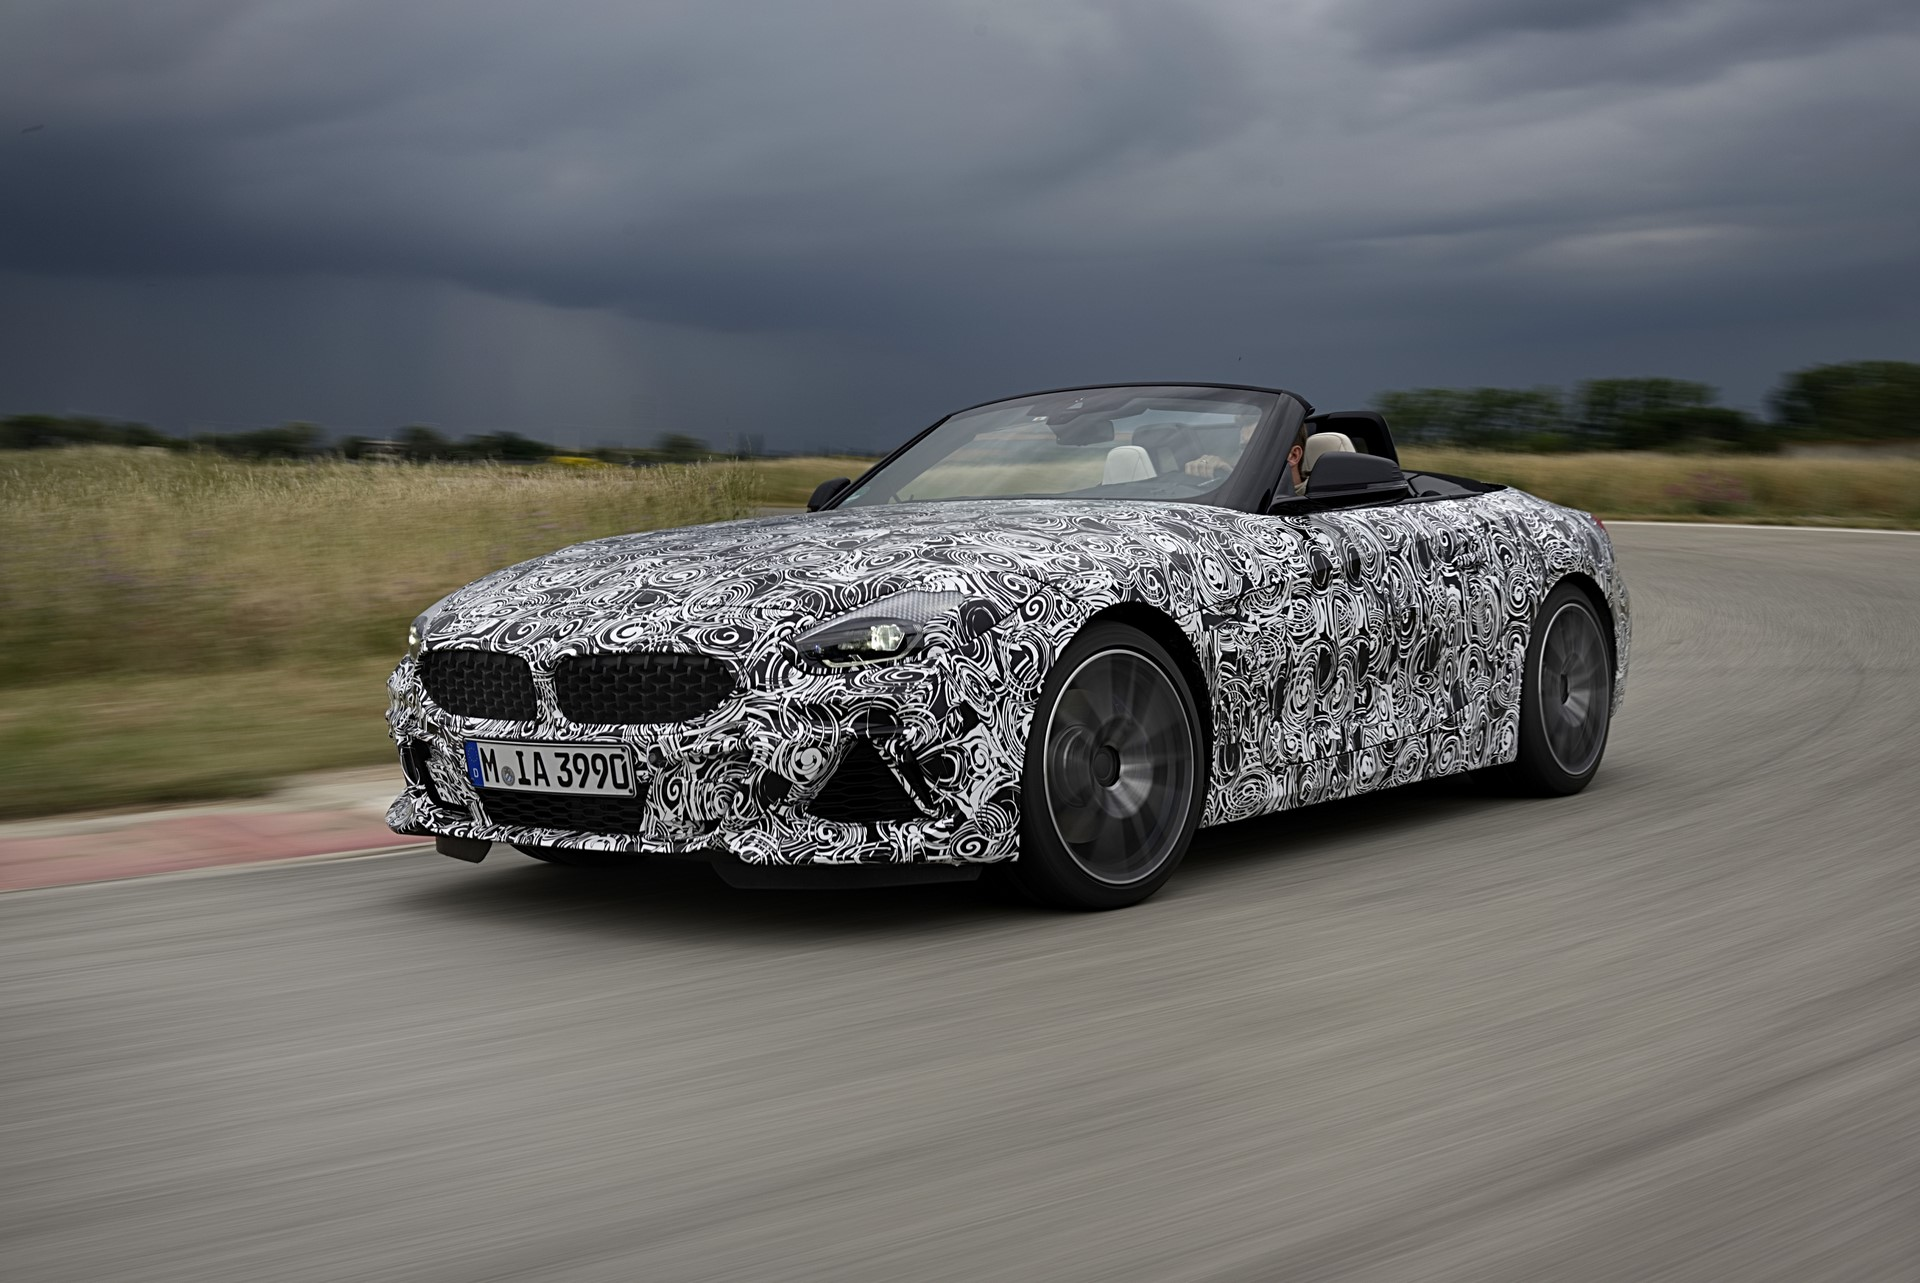 BMW Z4 M40i 2019 official spy photos (11)